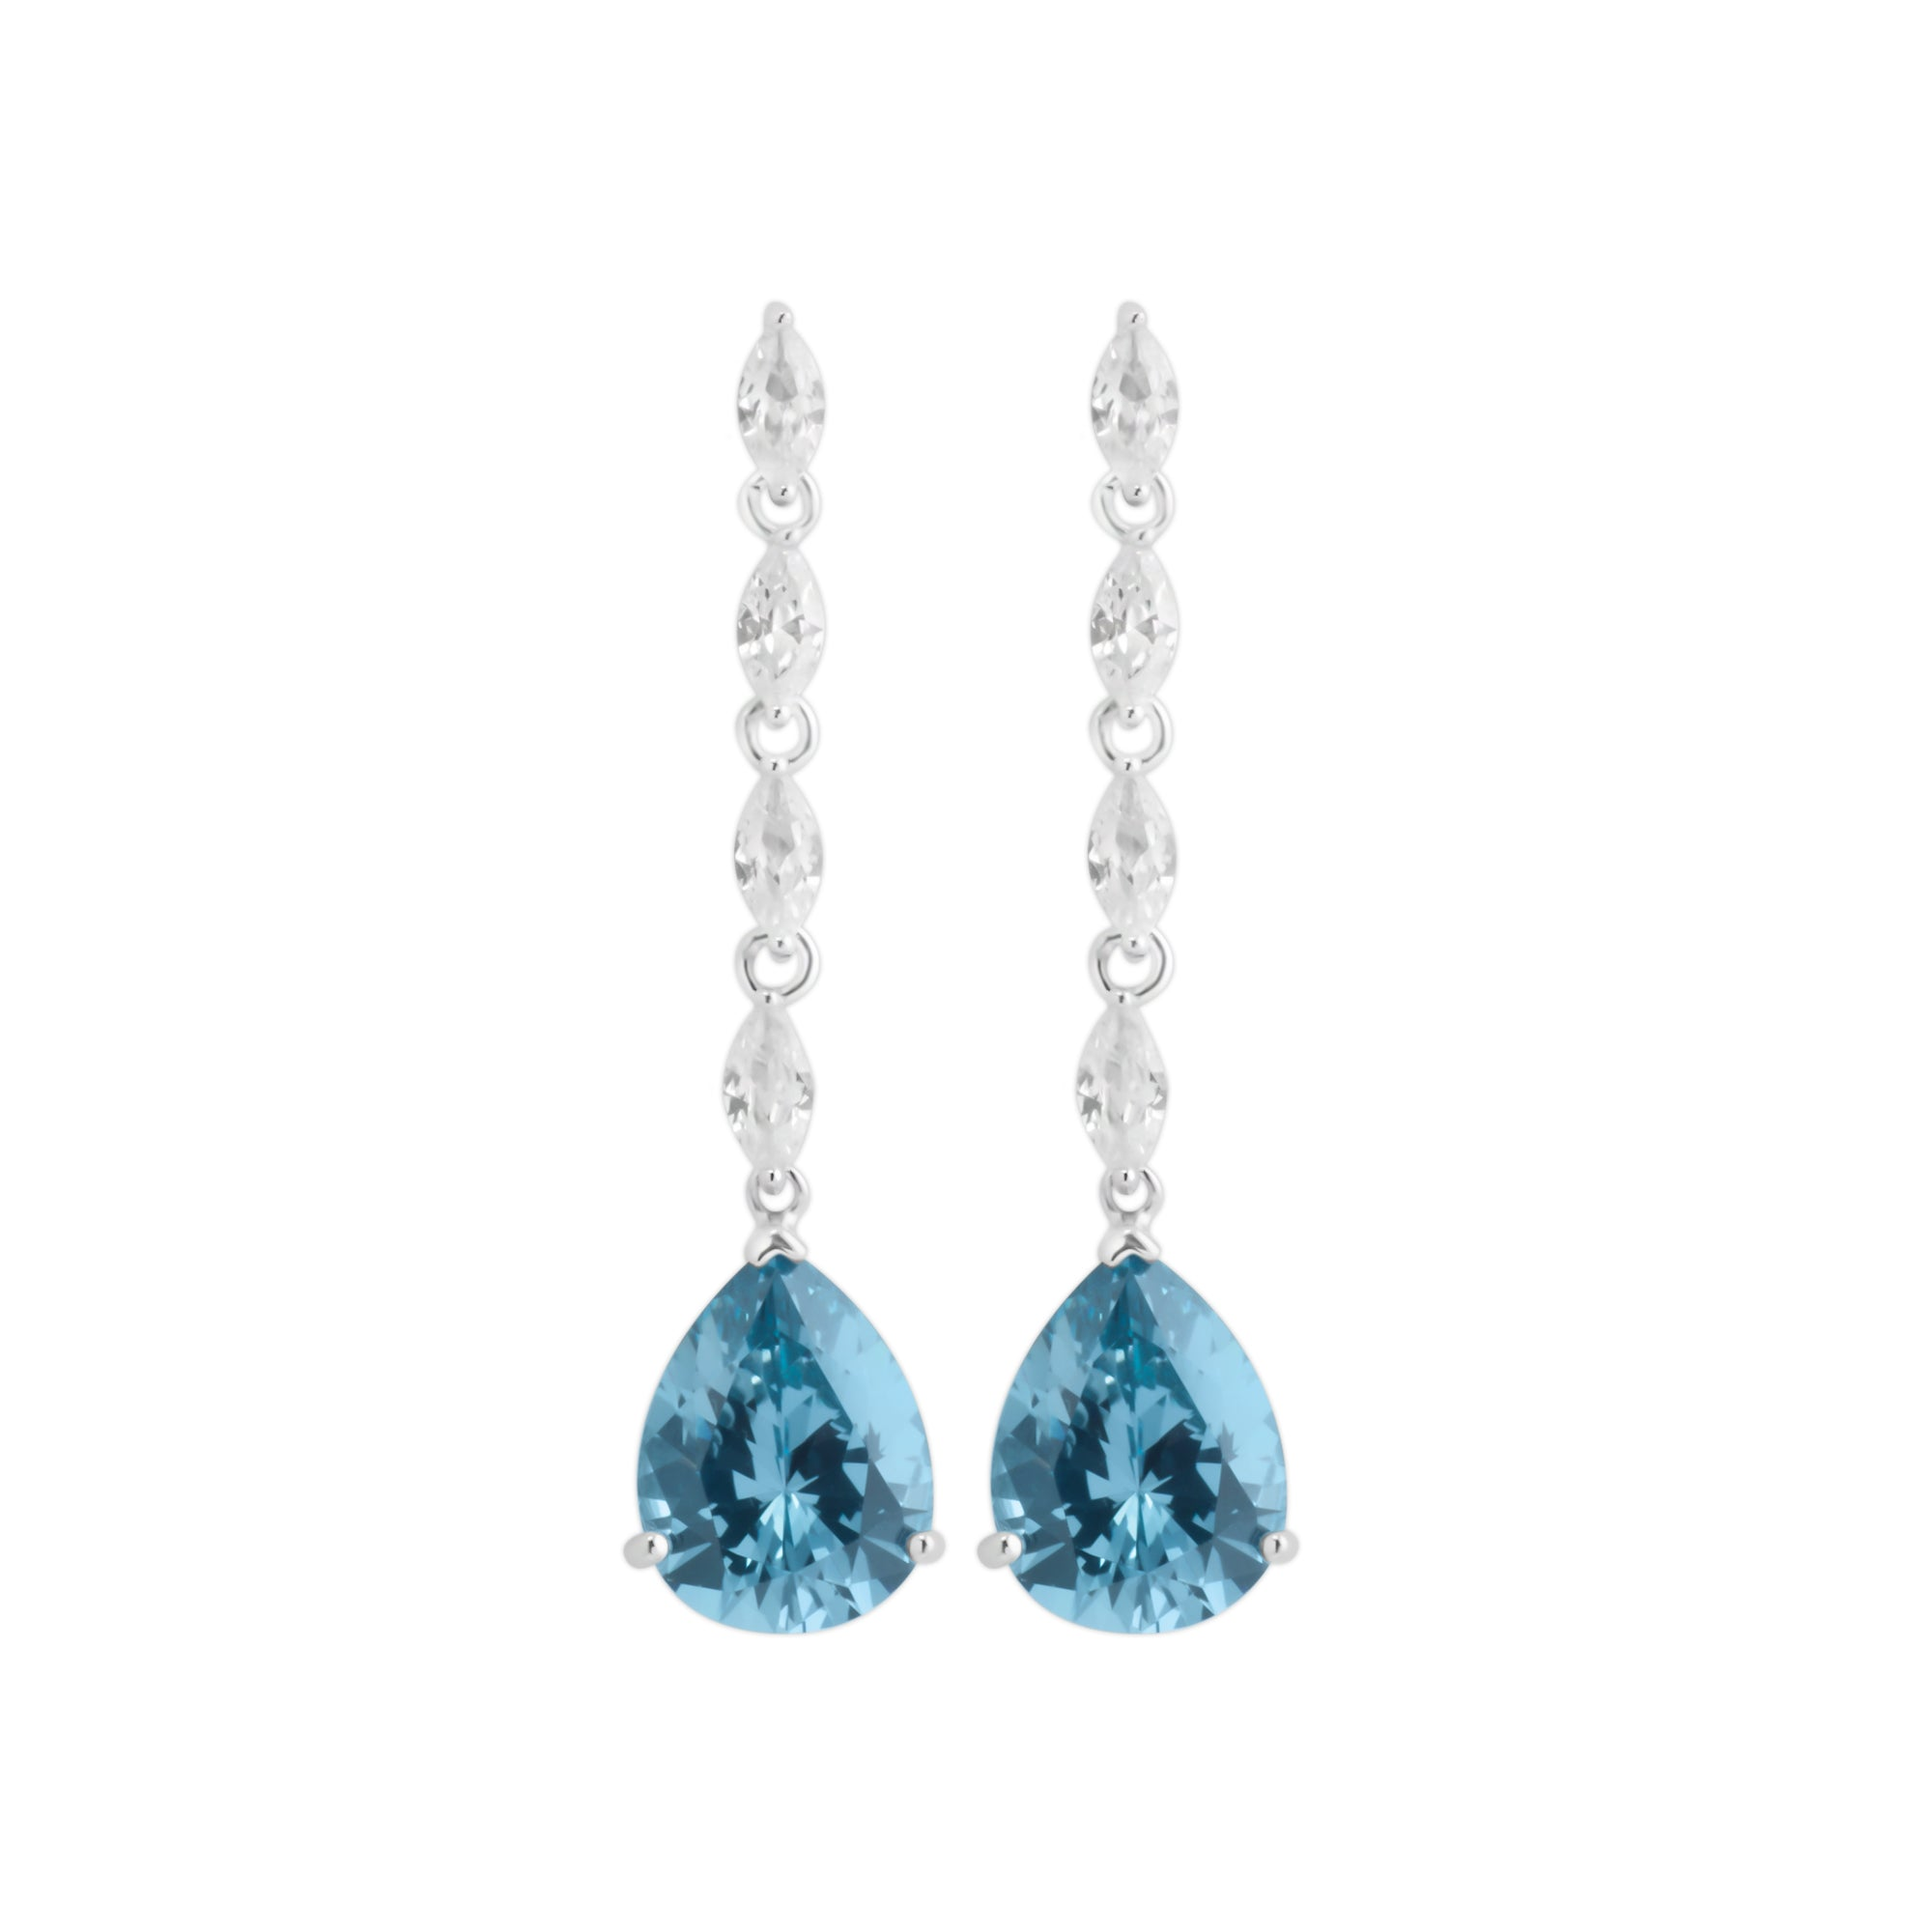 Earring With Blue Zircon & 5A Cubic Zirconia In Sterling Silver